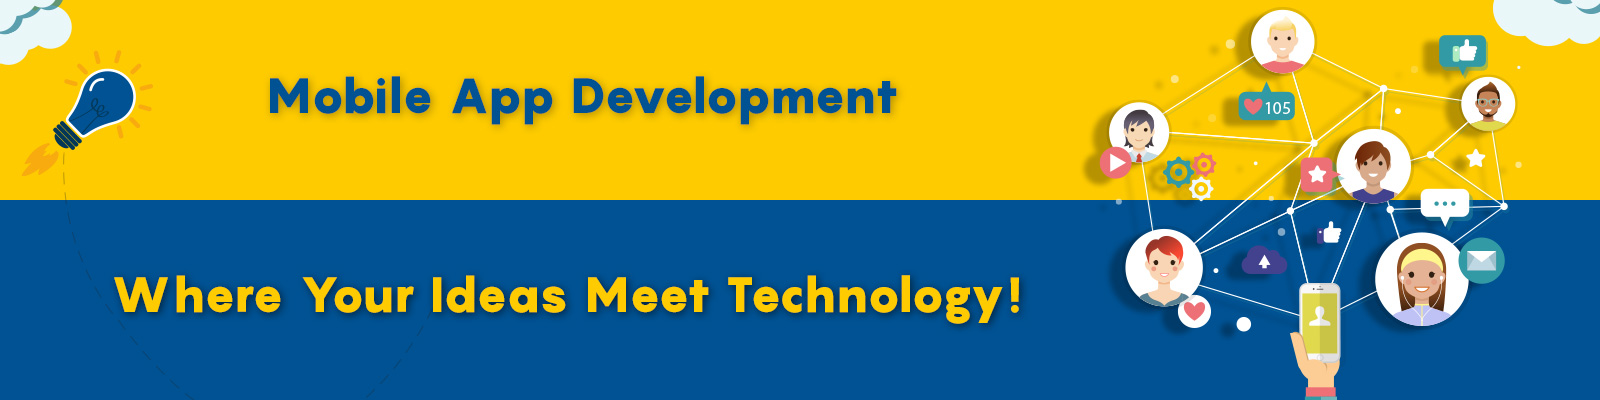 app development companies sweden